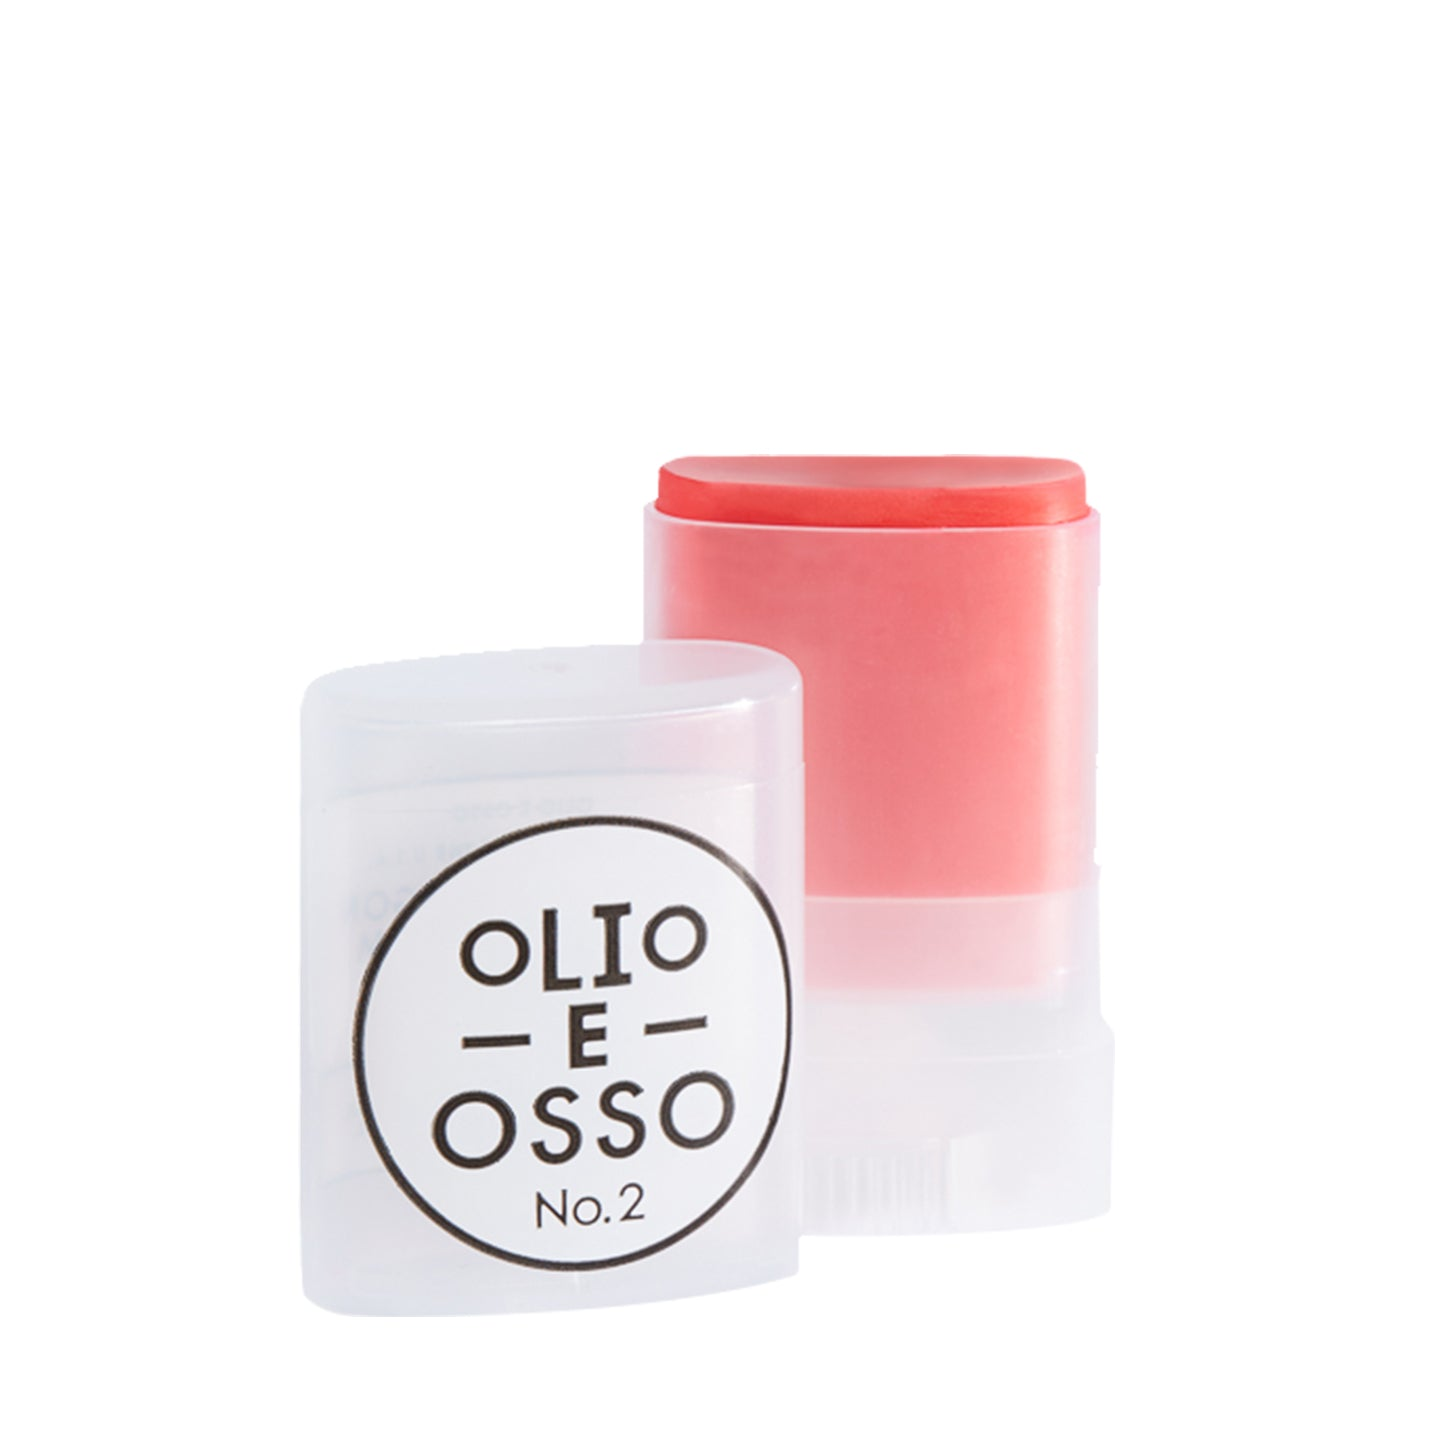 Olio E Osso Balm No. 2 - French Melon